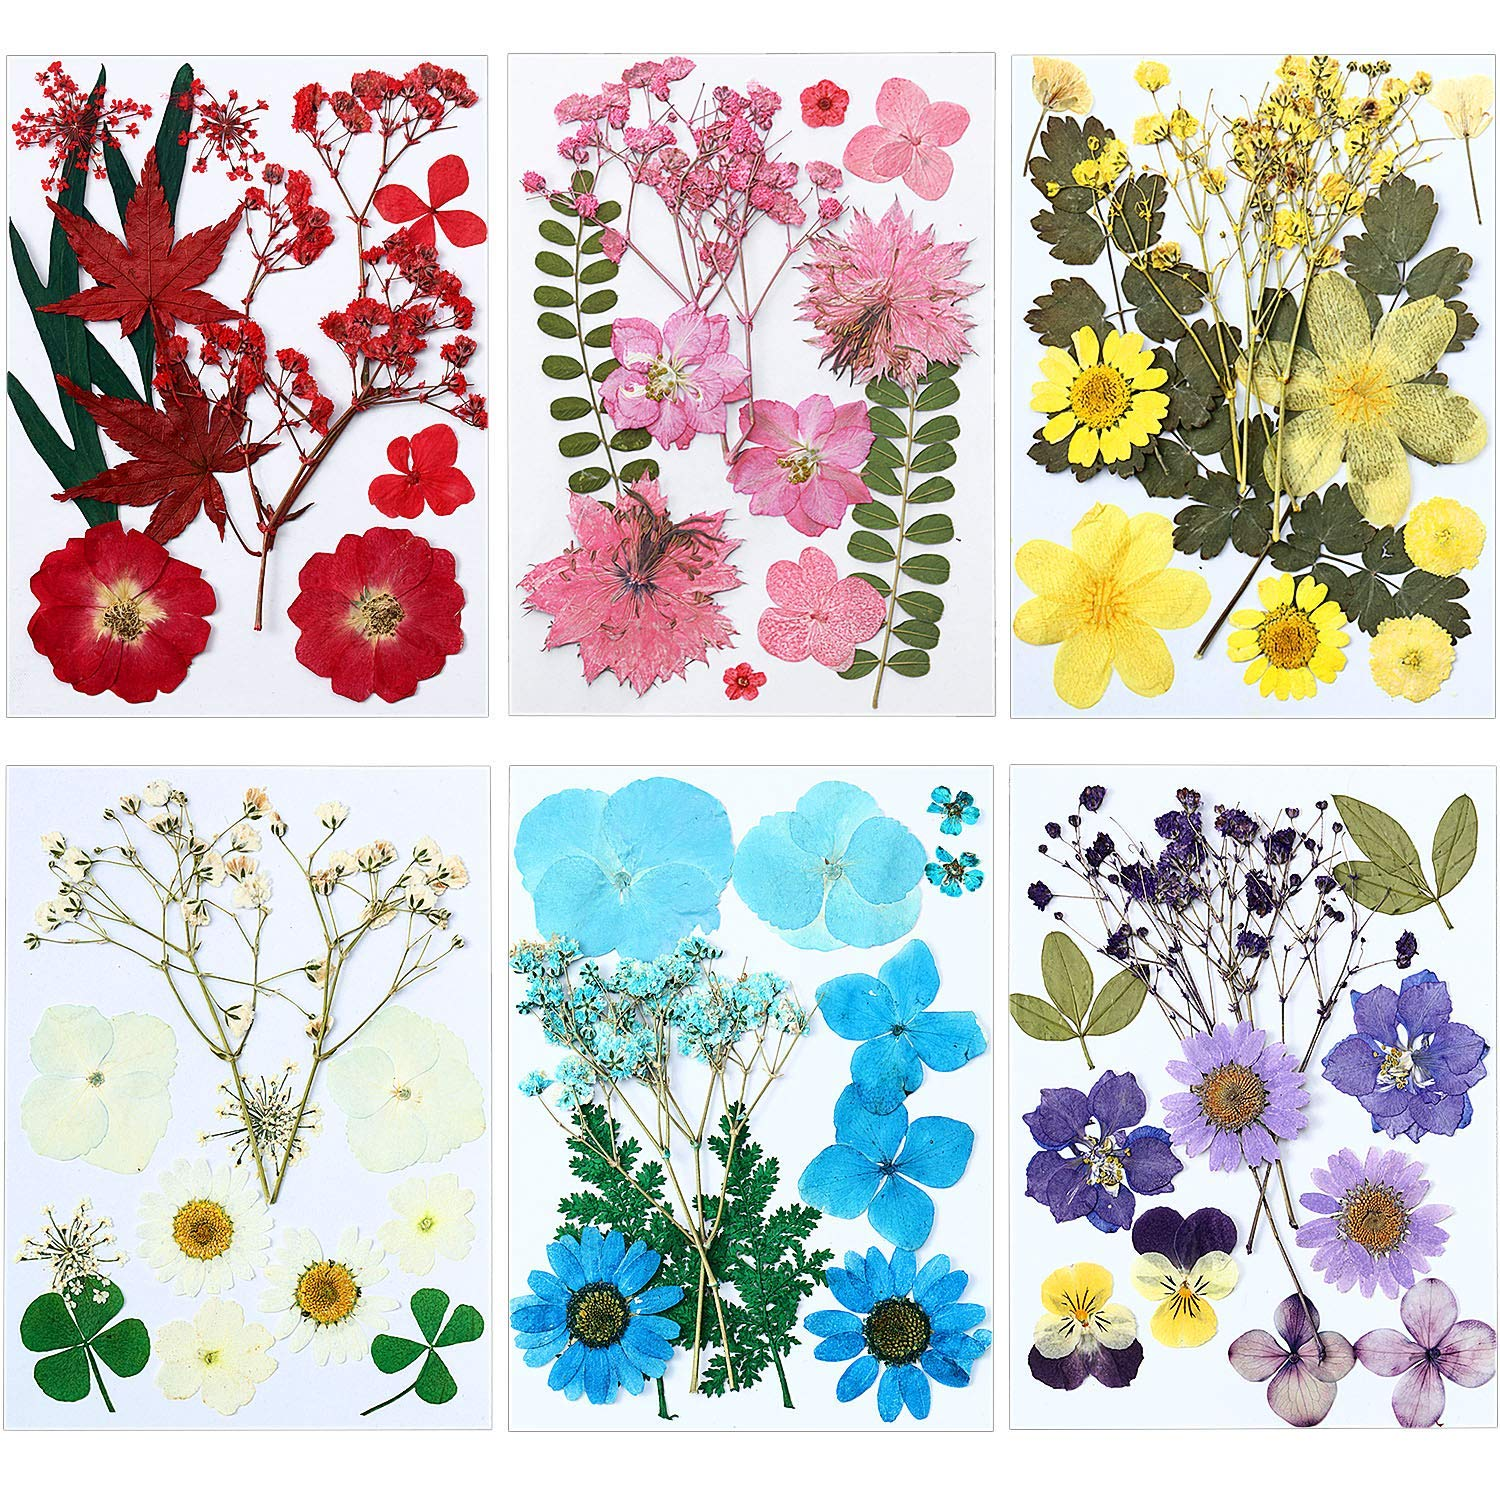 72 Pieces Real Dried Pressed Flowers Dried Flowers Leaves Set Mixed Multiple Dry Flower for DIY Candle Resin Jewelry Nail Pendant Crafts Art Floral Decoration